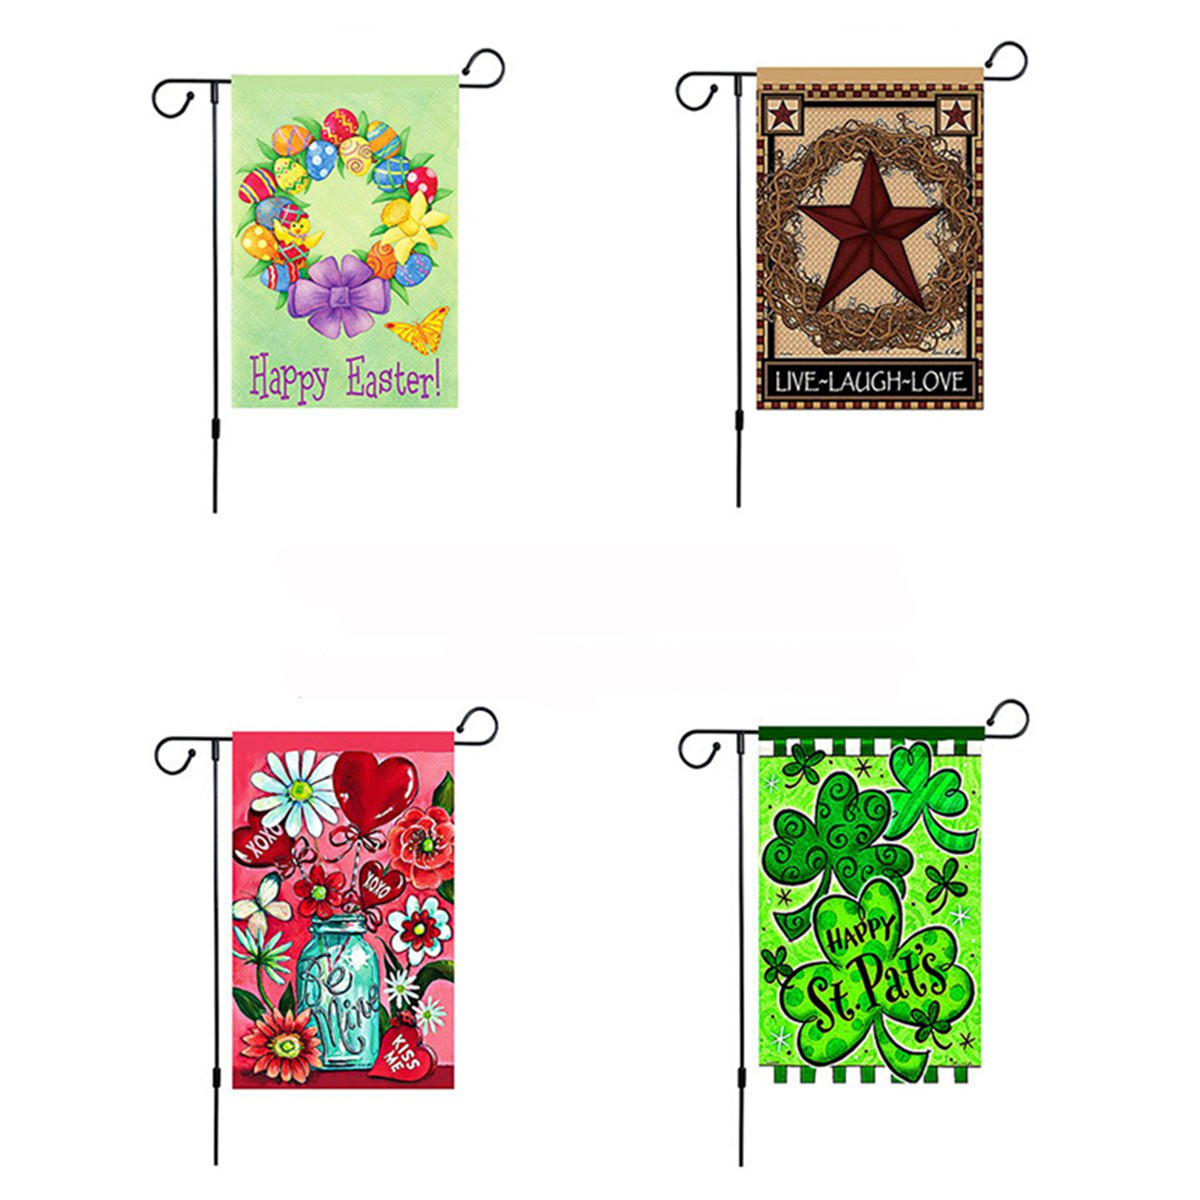 45'' x 15'' Iron Mini Garden Flags Pole Stand Holder Yard Decorations Display